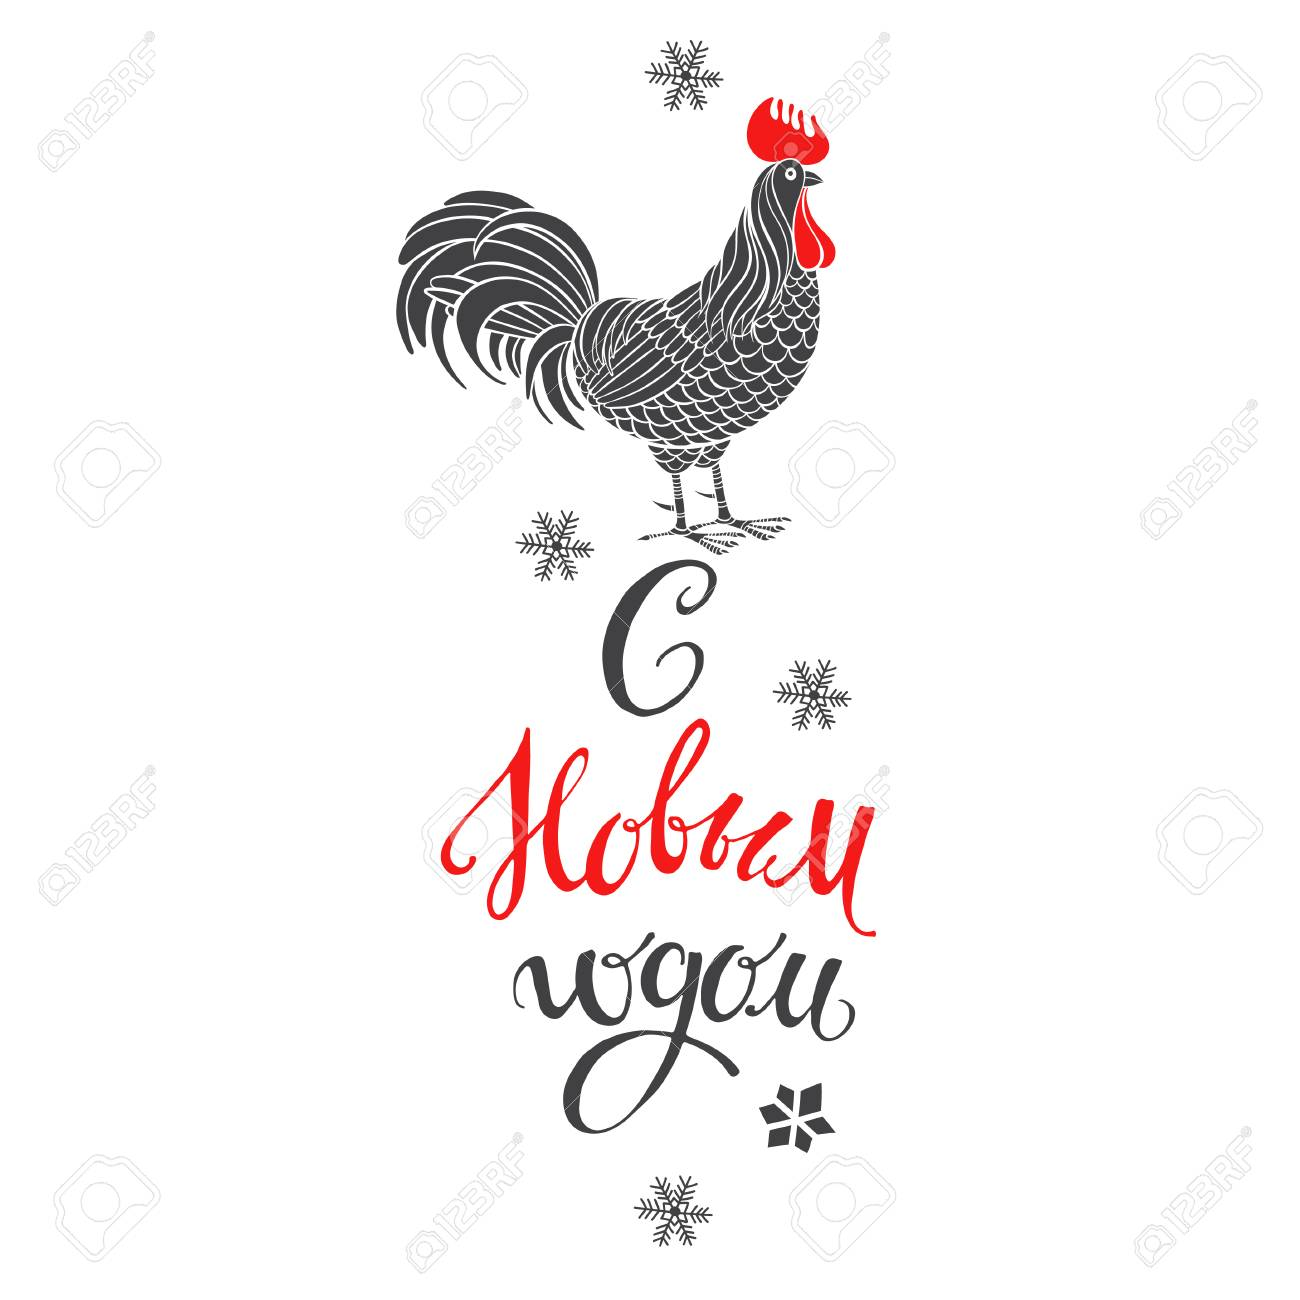 New year card with rooster and greeting in russian language new year card with rooster and greeting in russian language rooster animal symbol of m4hsunfo